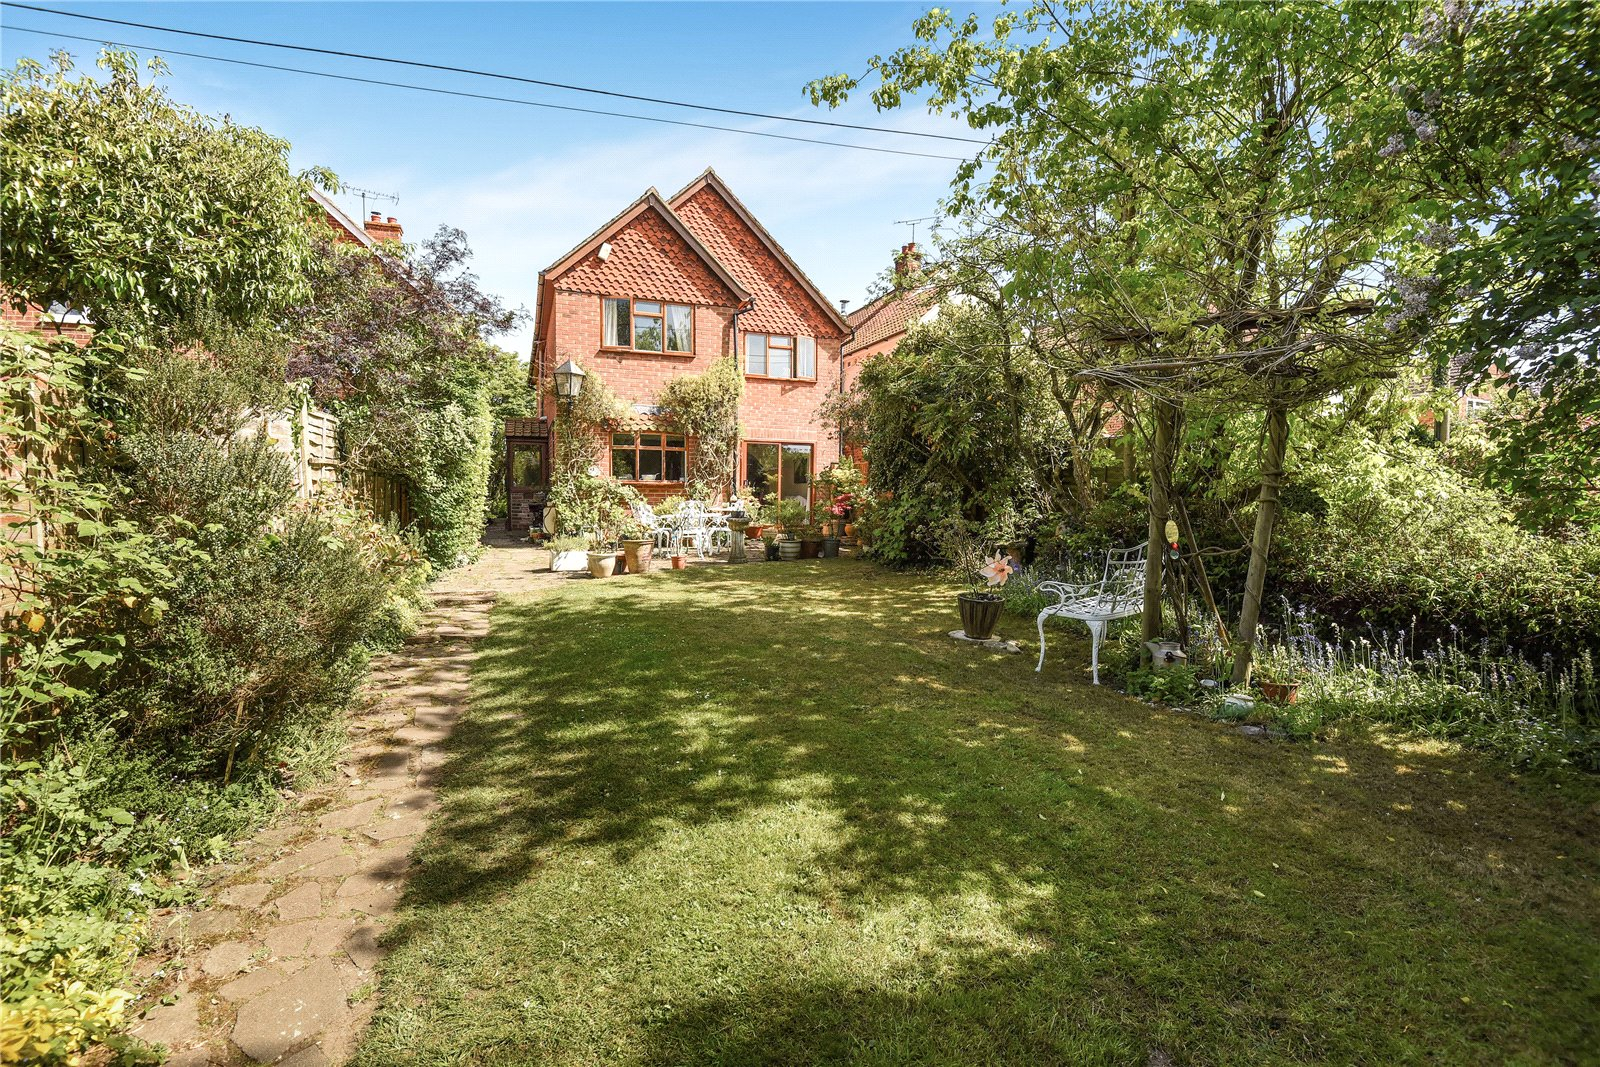 4 Bedrooms Detached House for sale in Priors Lane, Blackwater, Camberley, Hampshire, GU17